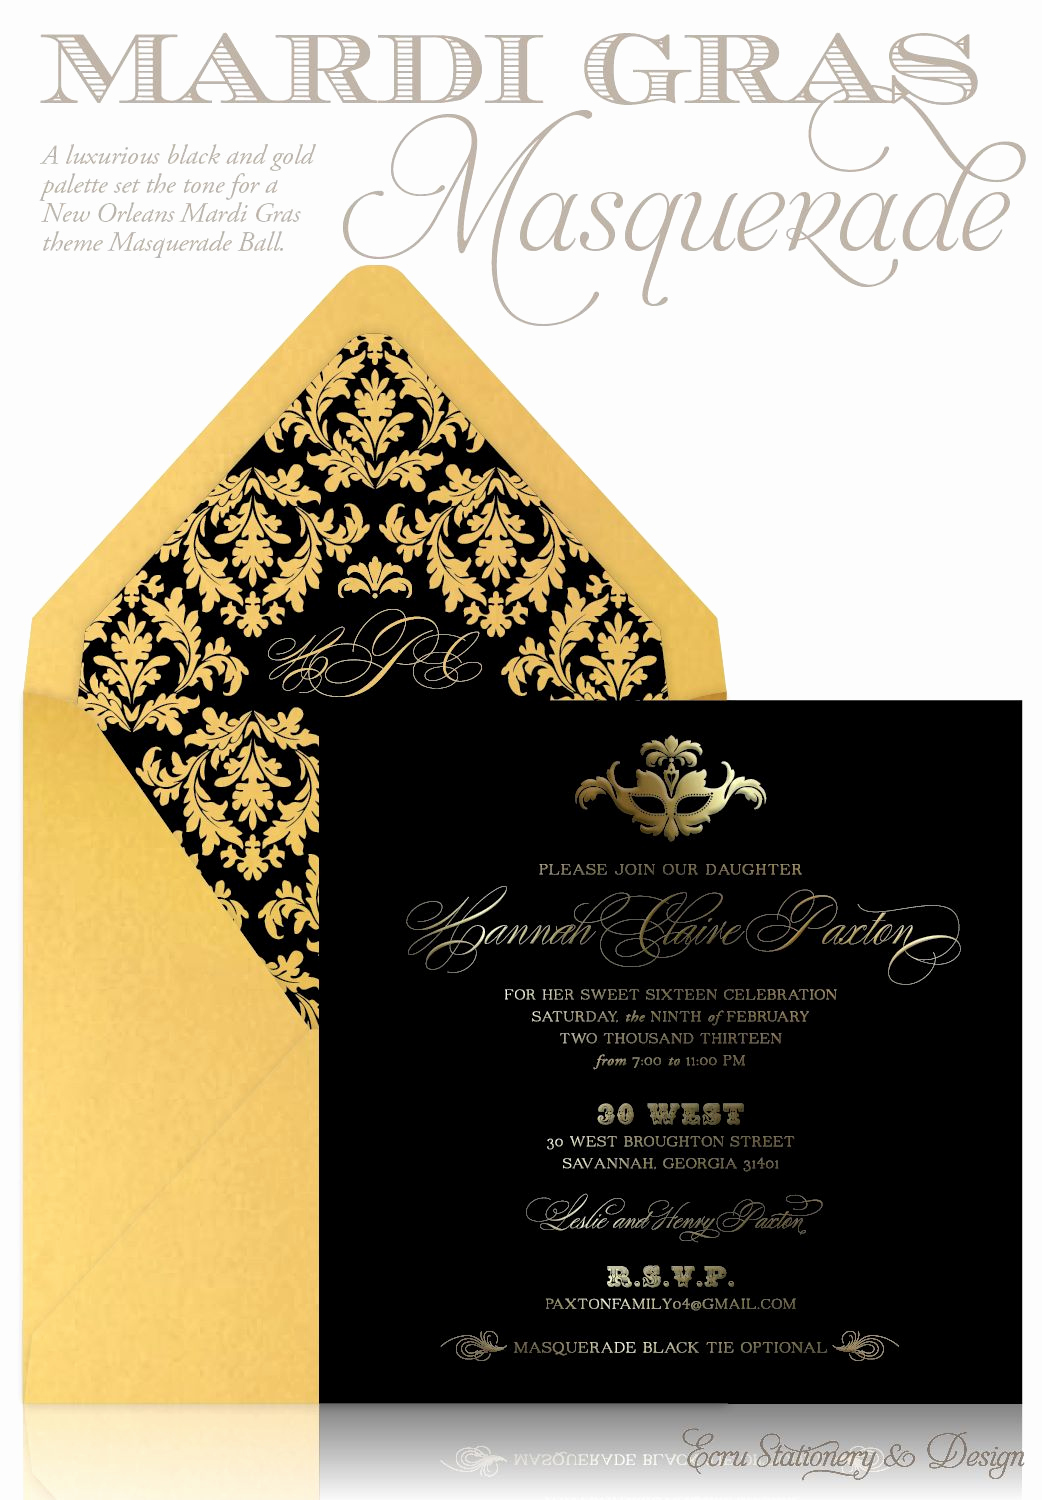 Black and Gold Invitation Template Elegant Custom Black and Gold Masquerade Party Sweet 16 Invitation